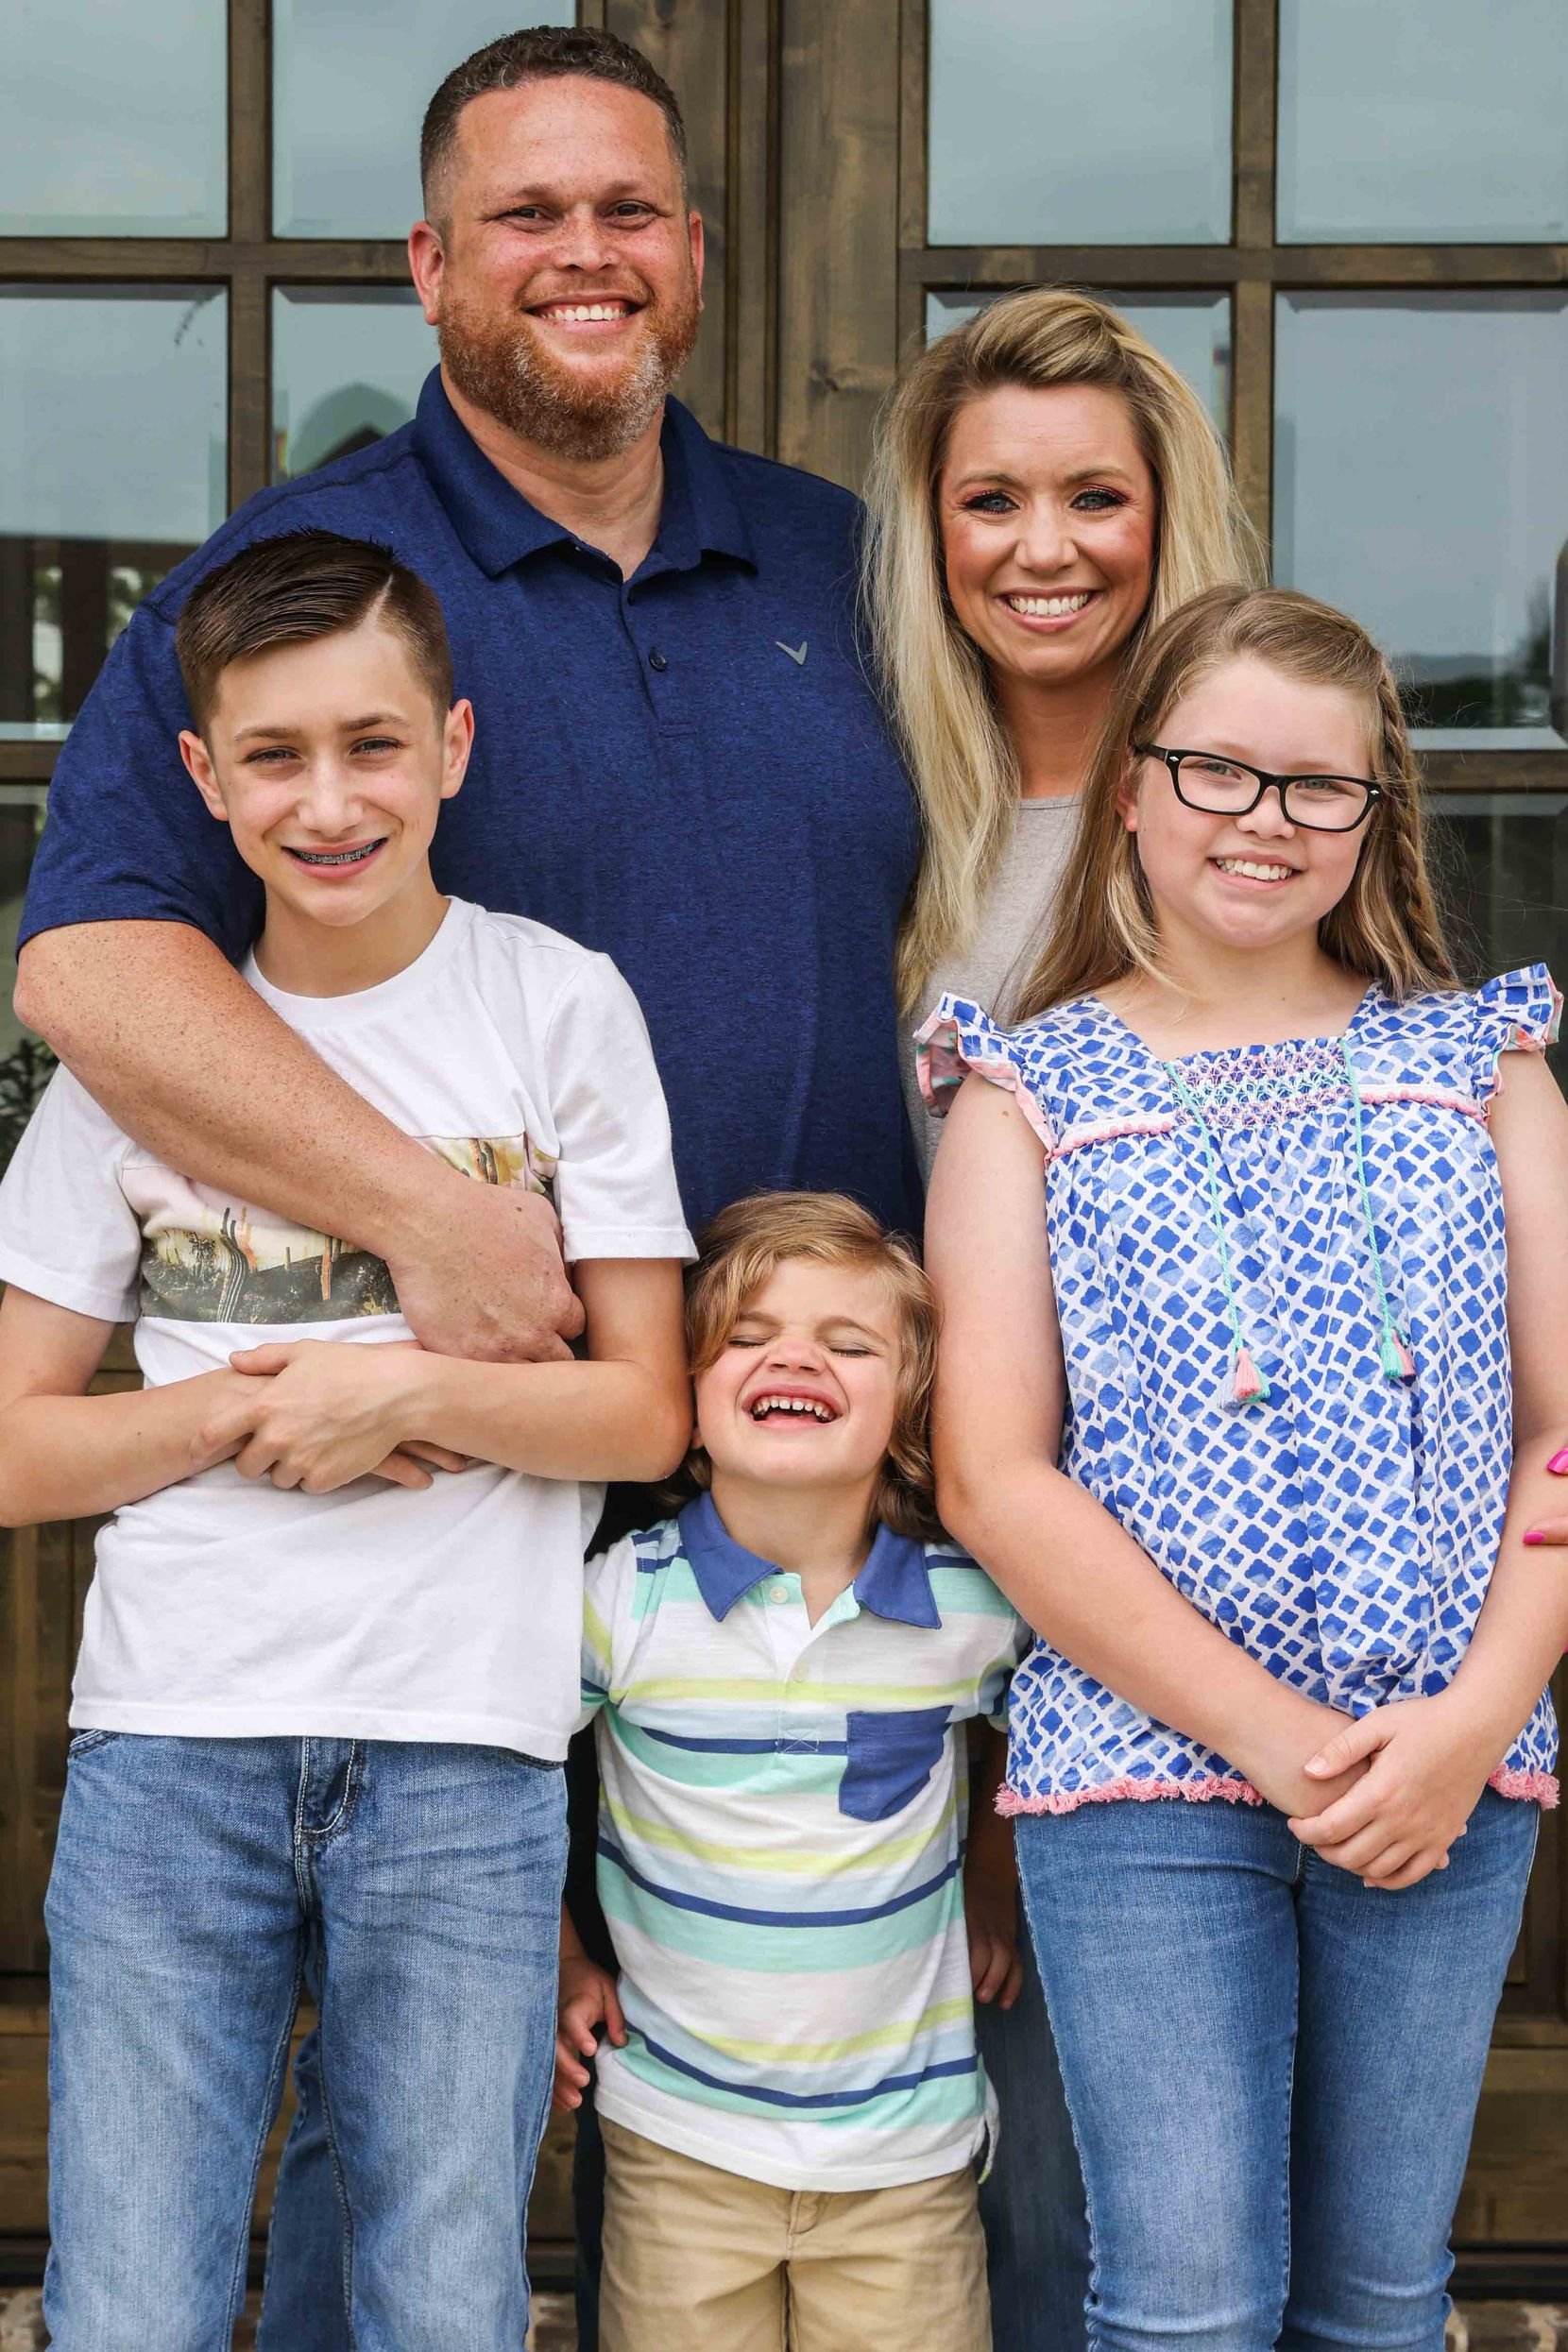 Tyler Tines Pride's family from left, Braydan, 13, Jaxon, 4, his wife Charity, 38 and Maddison, 10.